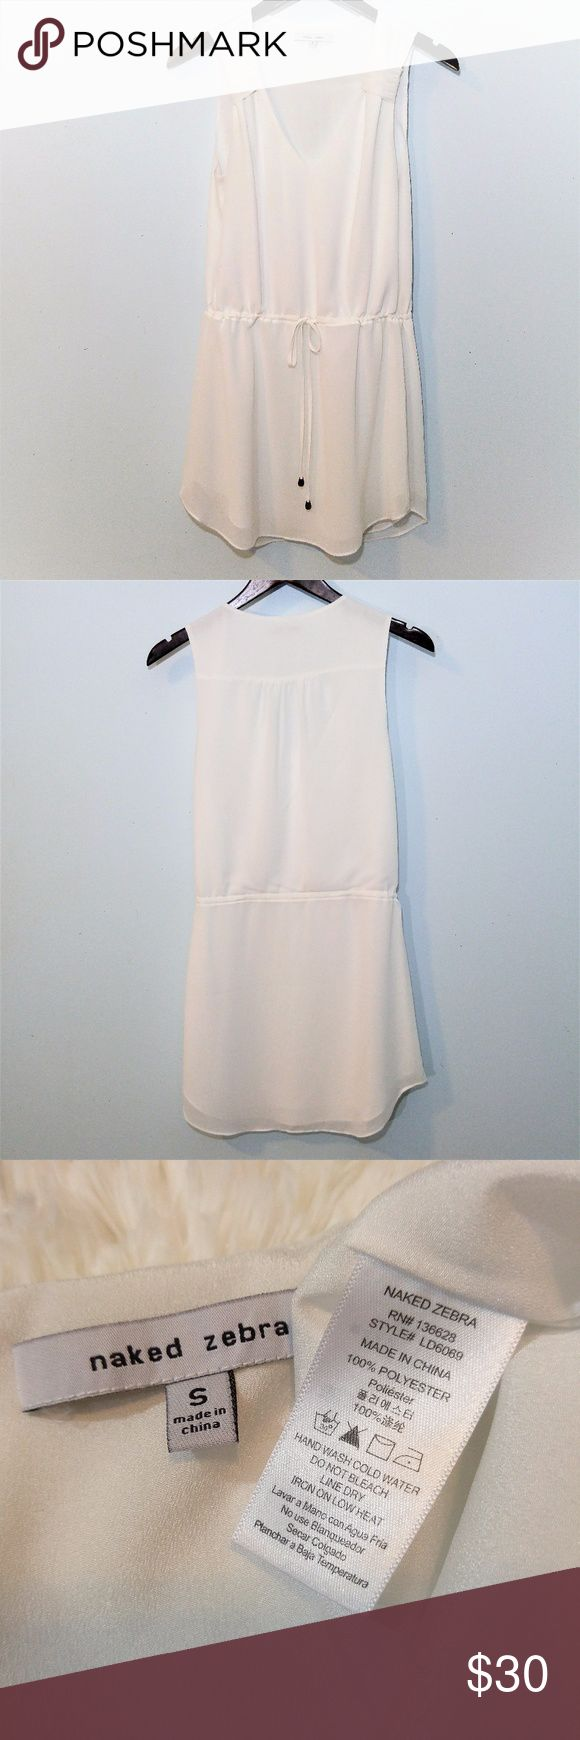 Naked Zebra Sexy White Dress size S Super sexy Naked Zebra white dress with drawstring waist and gathered details above the V-neckline.  Somewhat sheer so plan your undergarments (or lack thereof) accordingly :) Perfect for a honeymoon, vacation or a spring/summer date night! No holes, stains or flaws.  SUPER FAST same day or next business day shipping. Bundles always discounted, offers welcomed! Thanks for looking :) Naked Zebra Dresses Mini